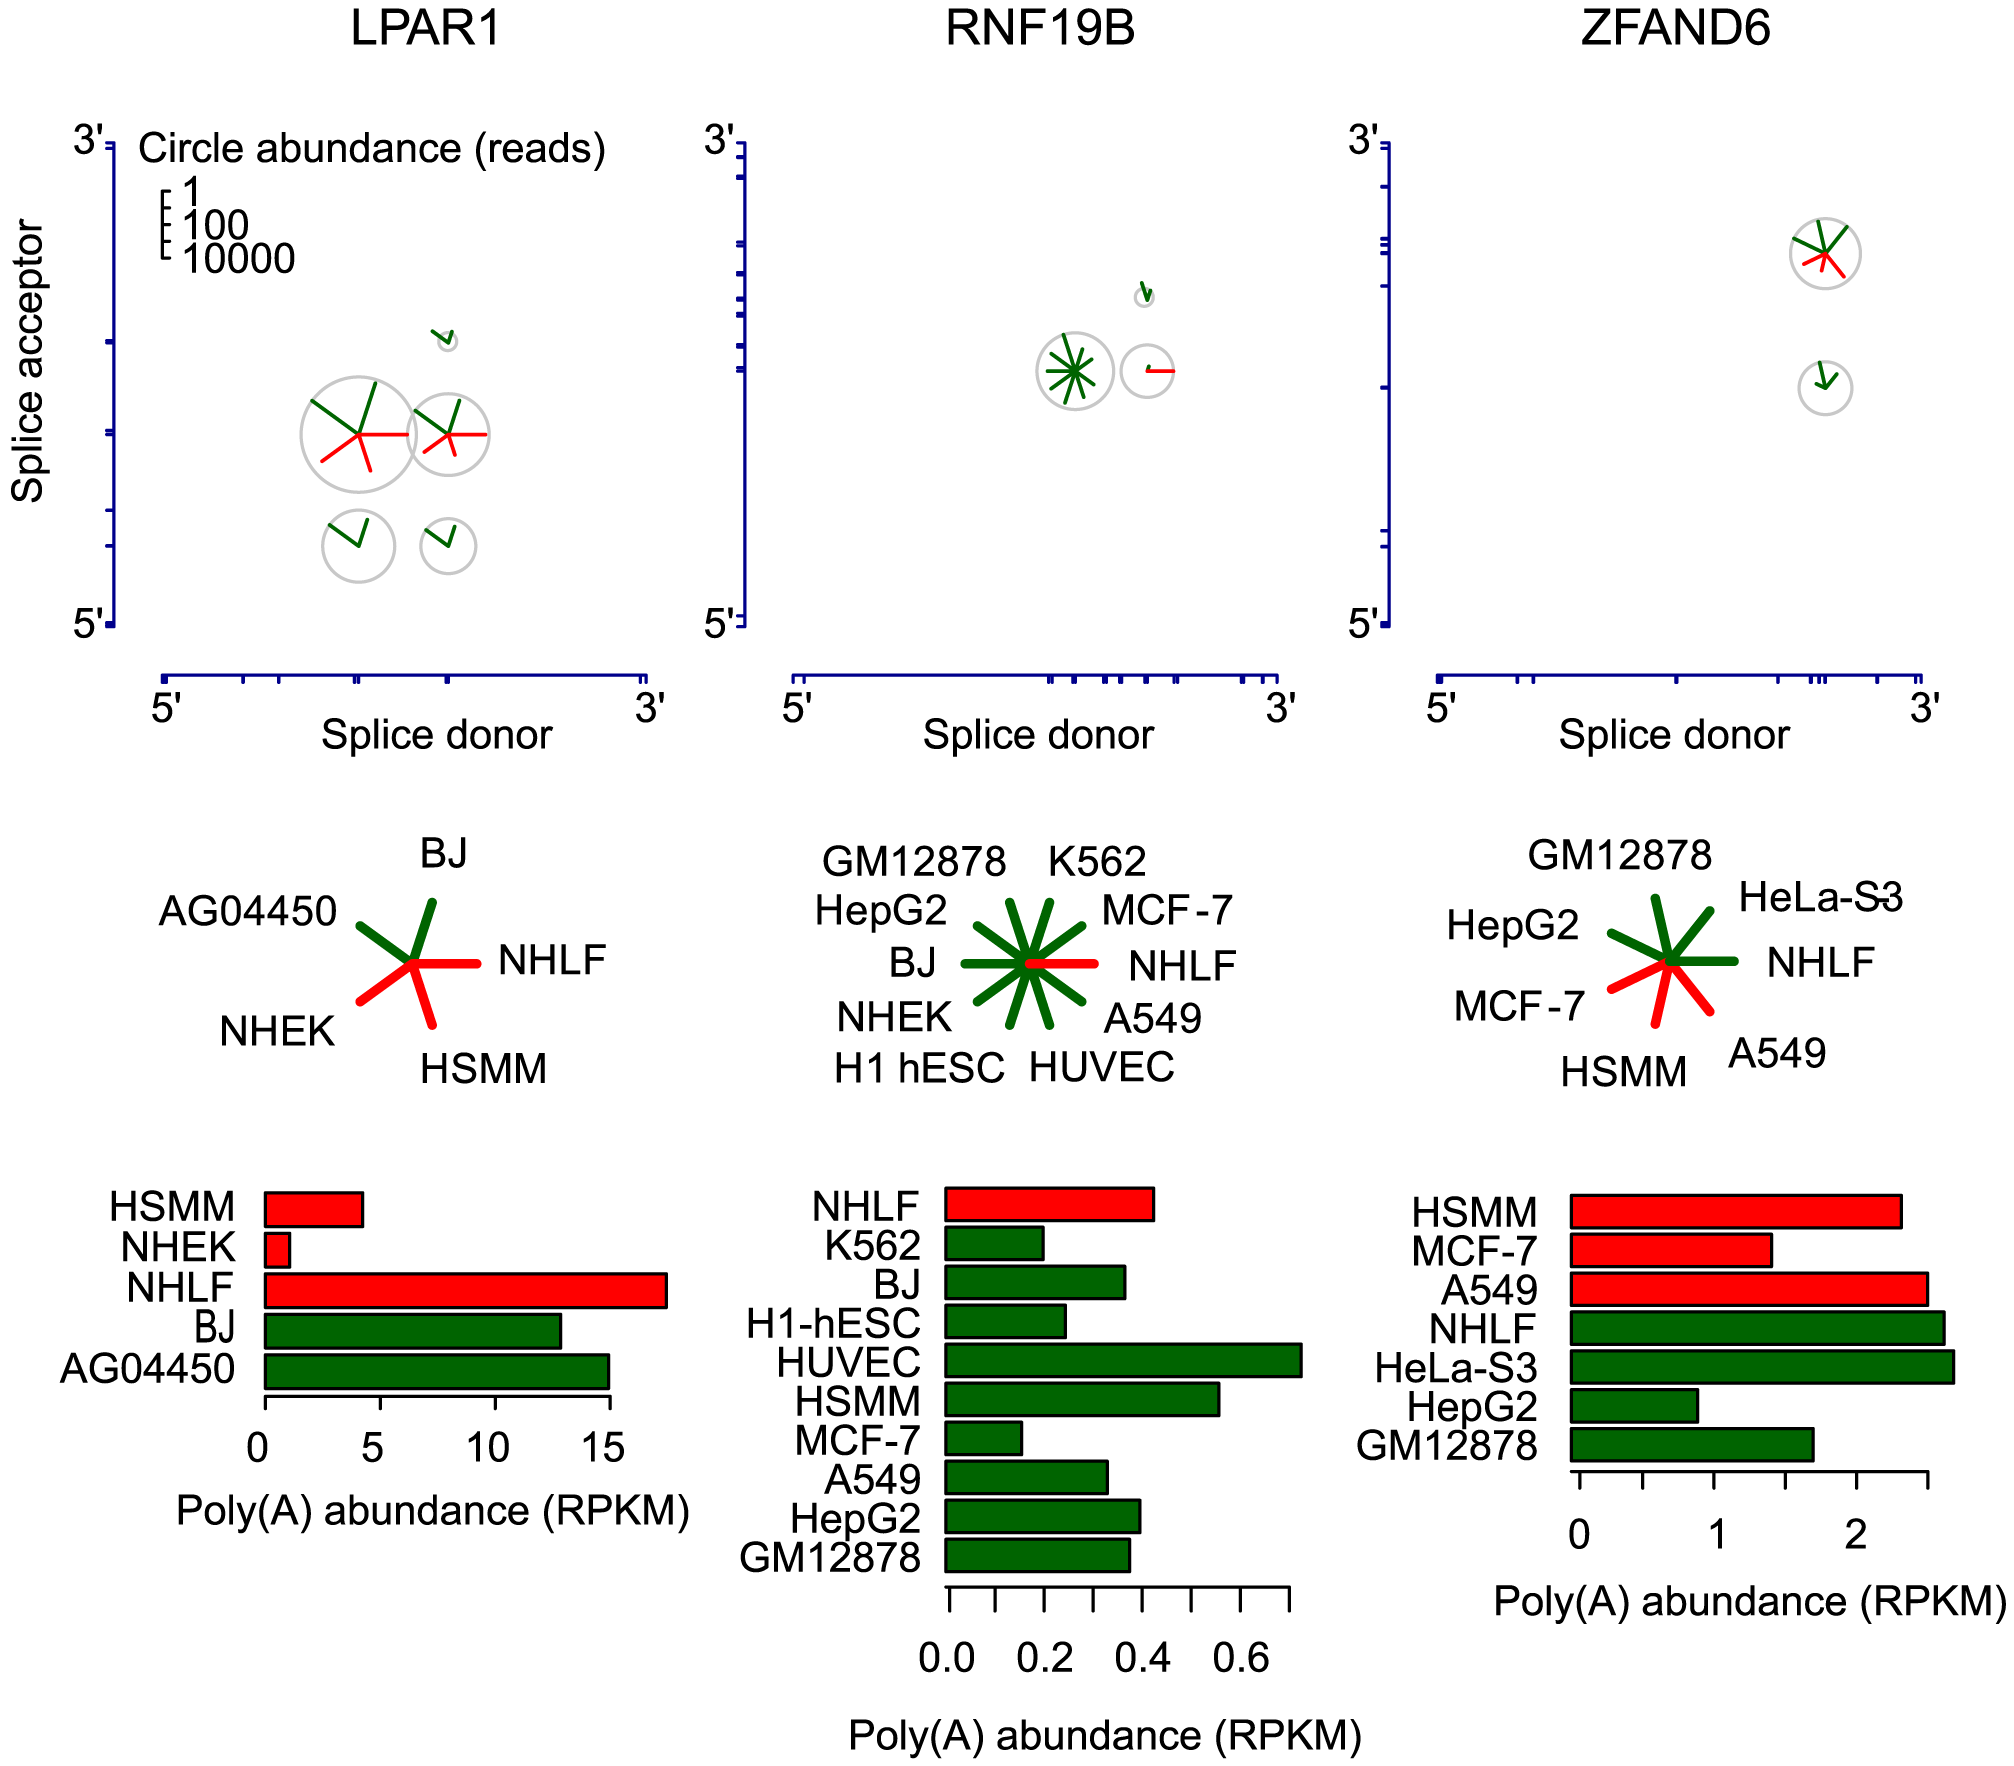 Circular isoform expression is regulated within individual genes.